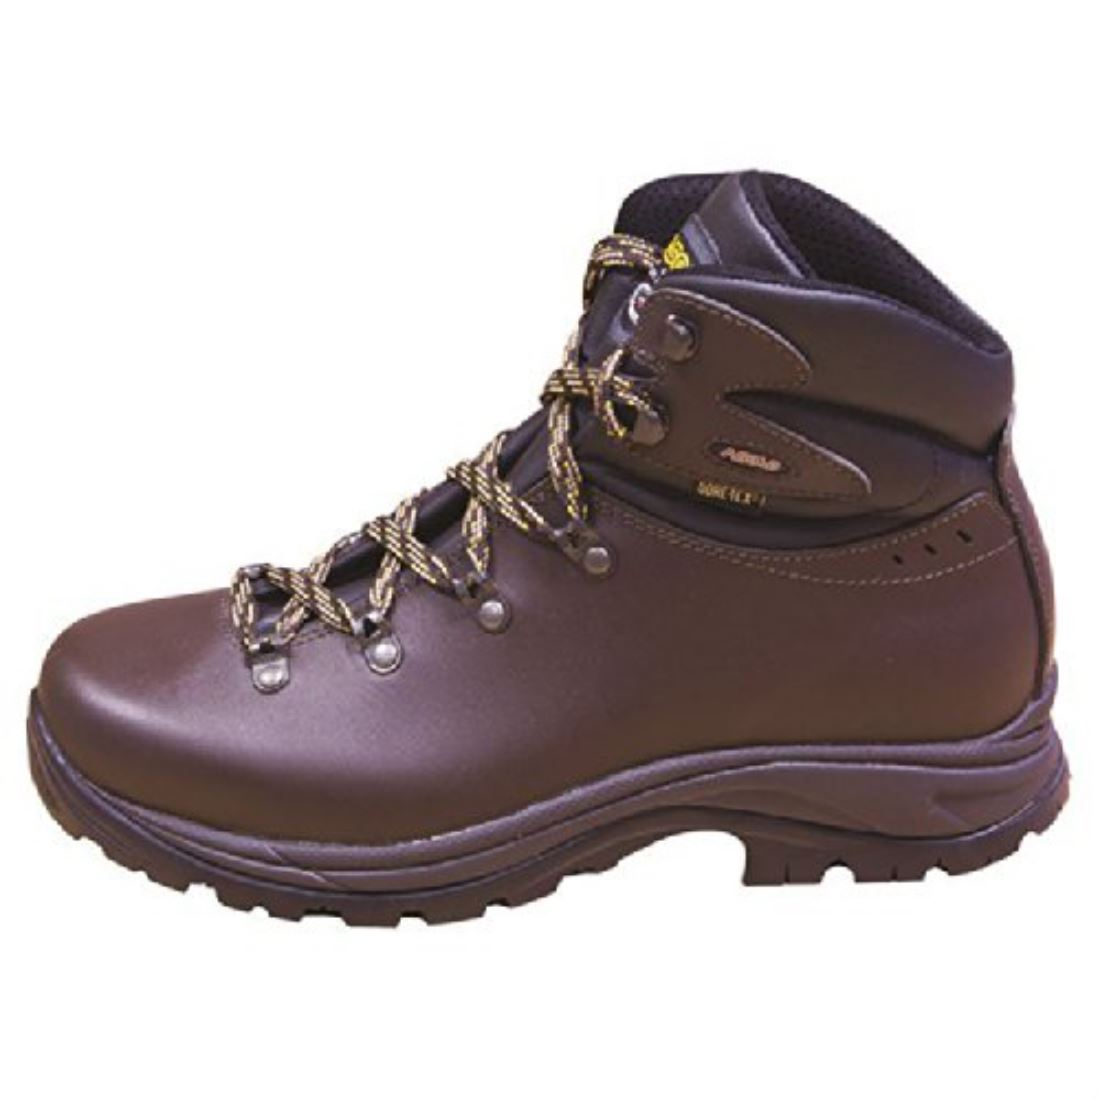 Asolo Mens Leather Gore Tex Walking Hiking Lace Up Boots Waterproof